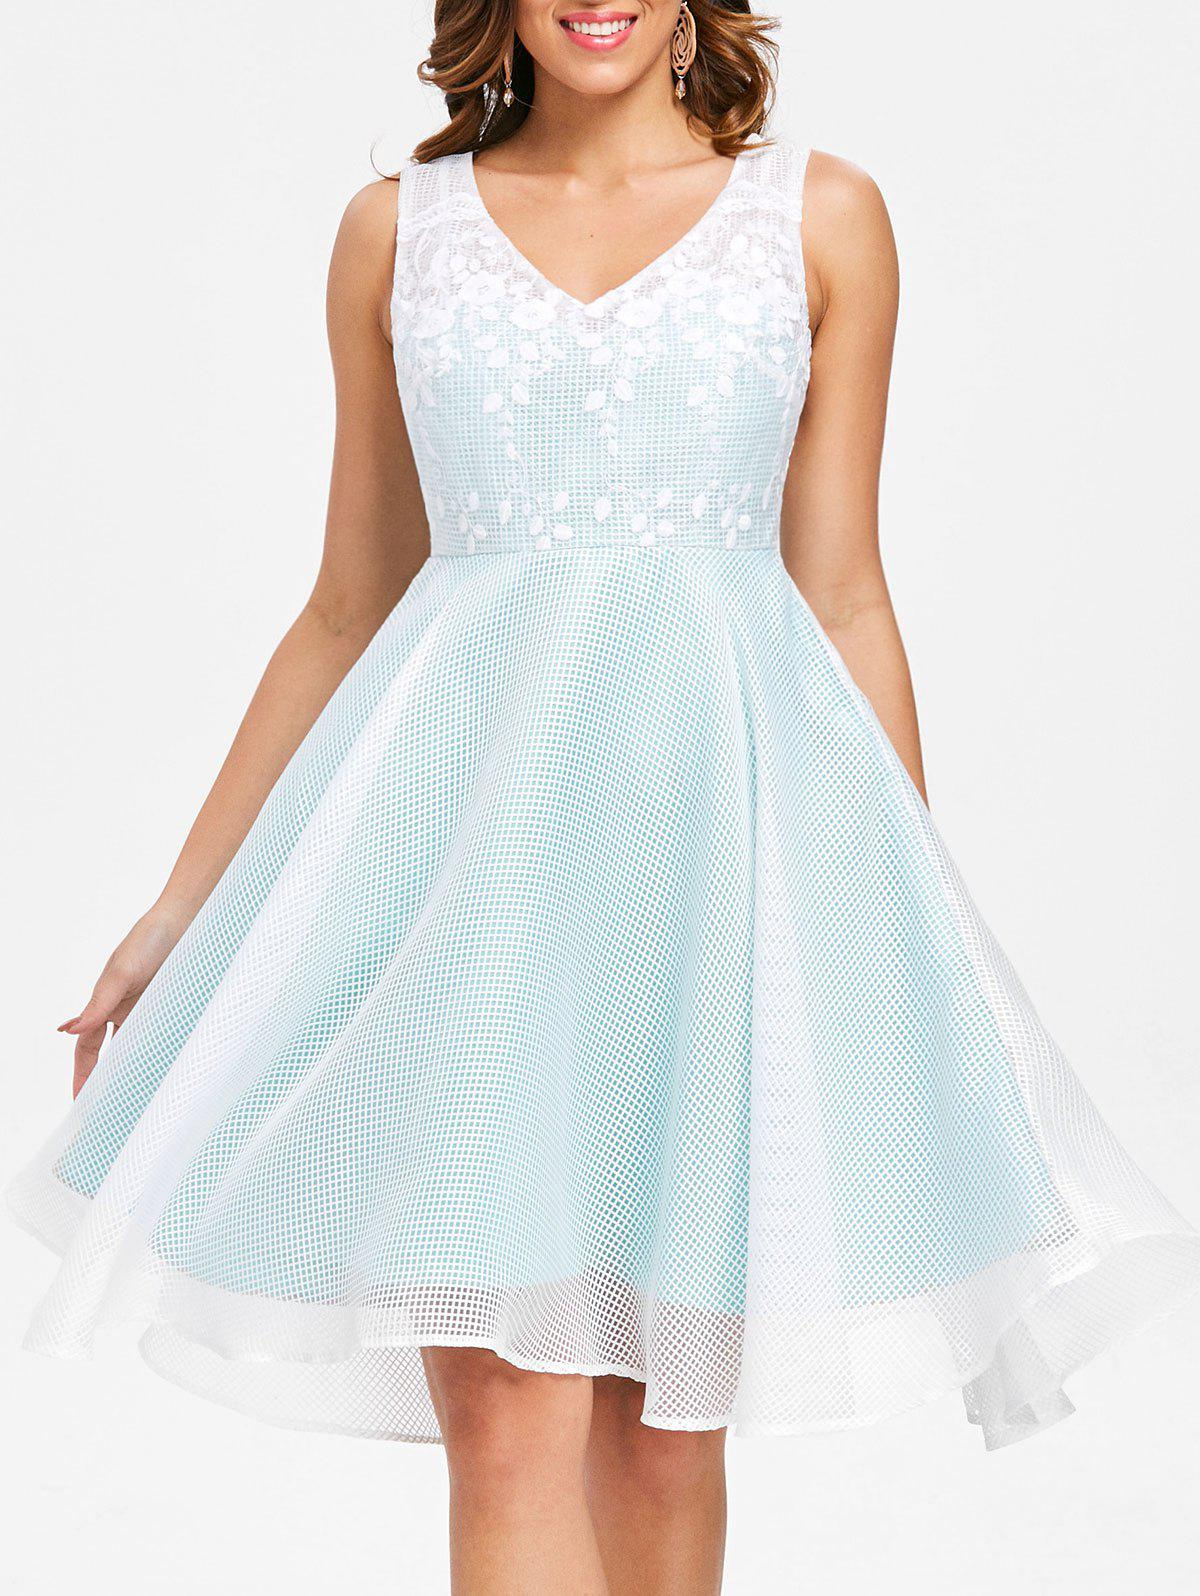 Hot Lace Trim Fit and Flare Dress